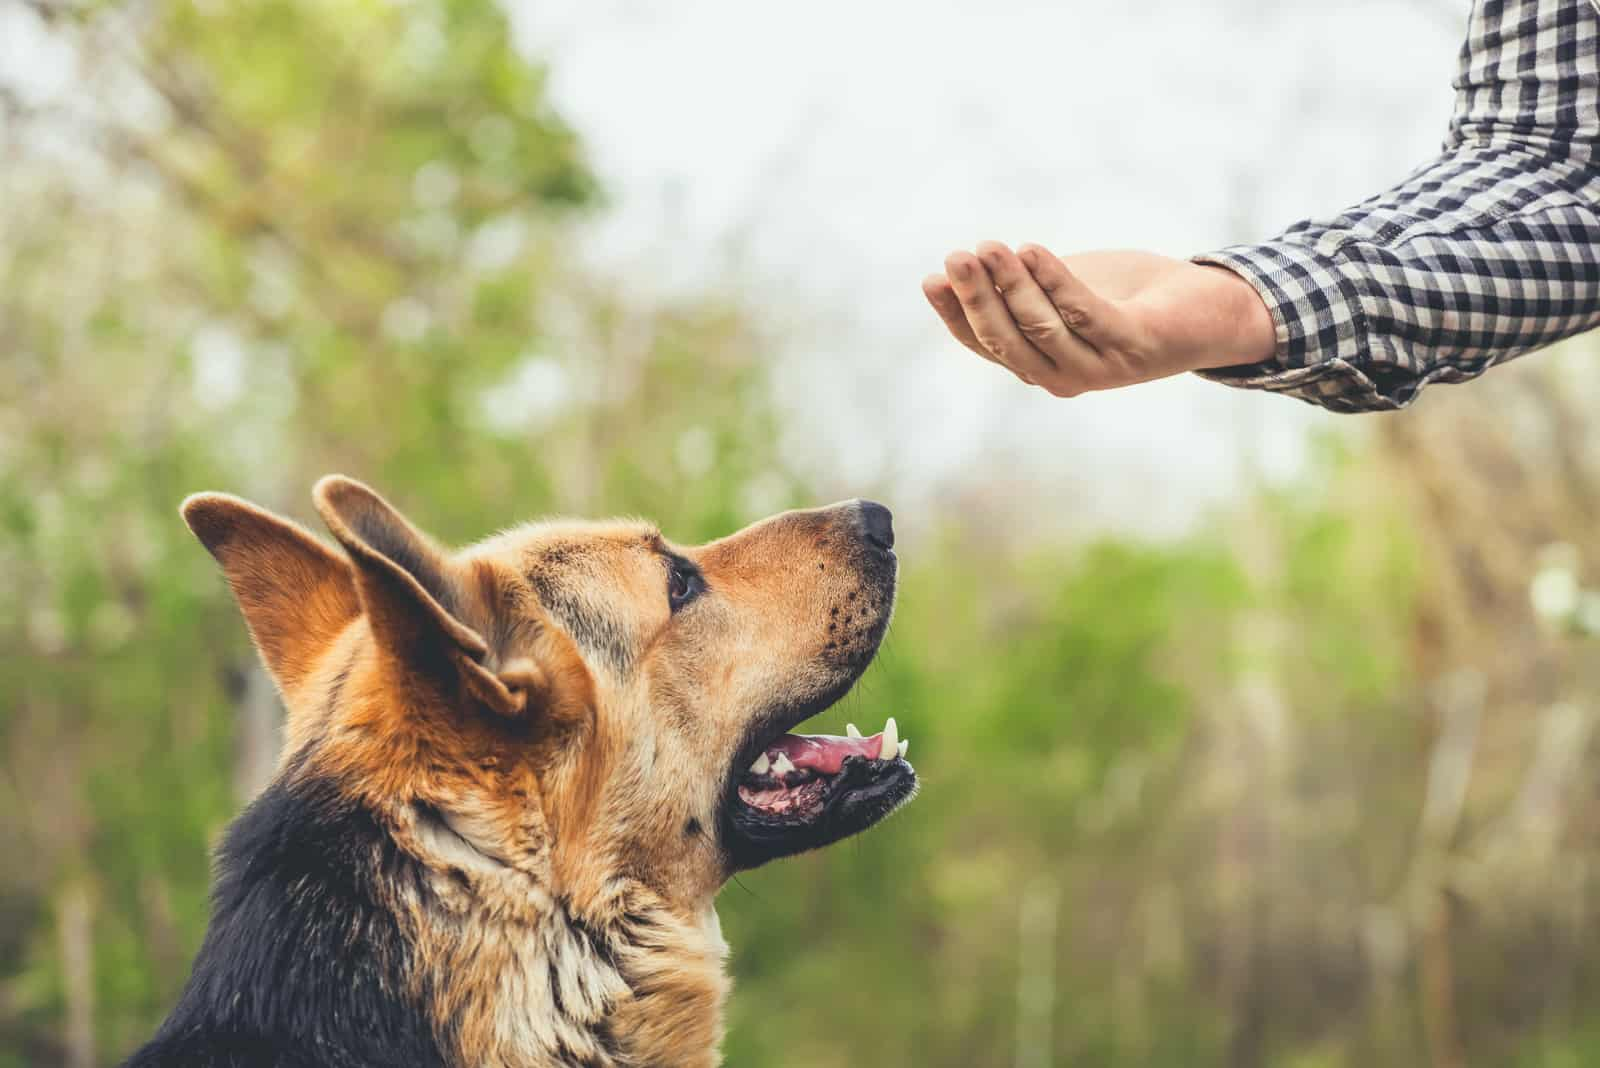 a man gives a treat to a German shepherd